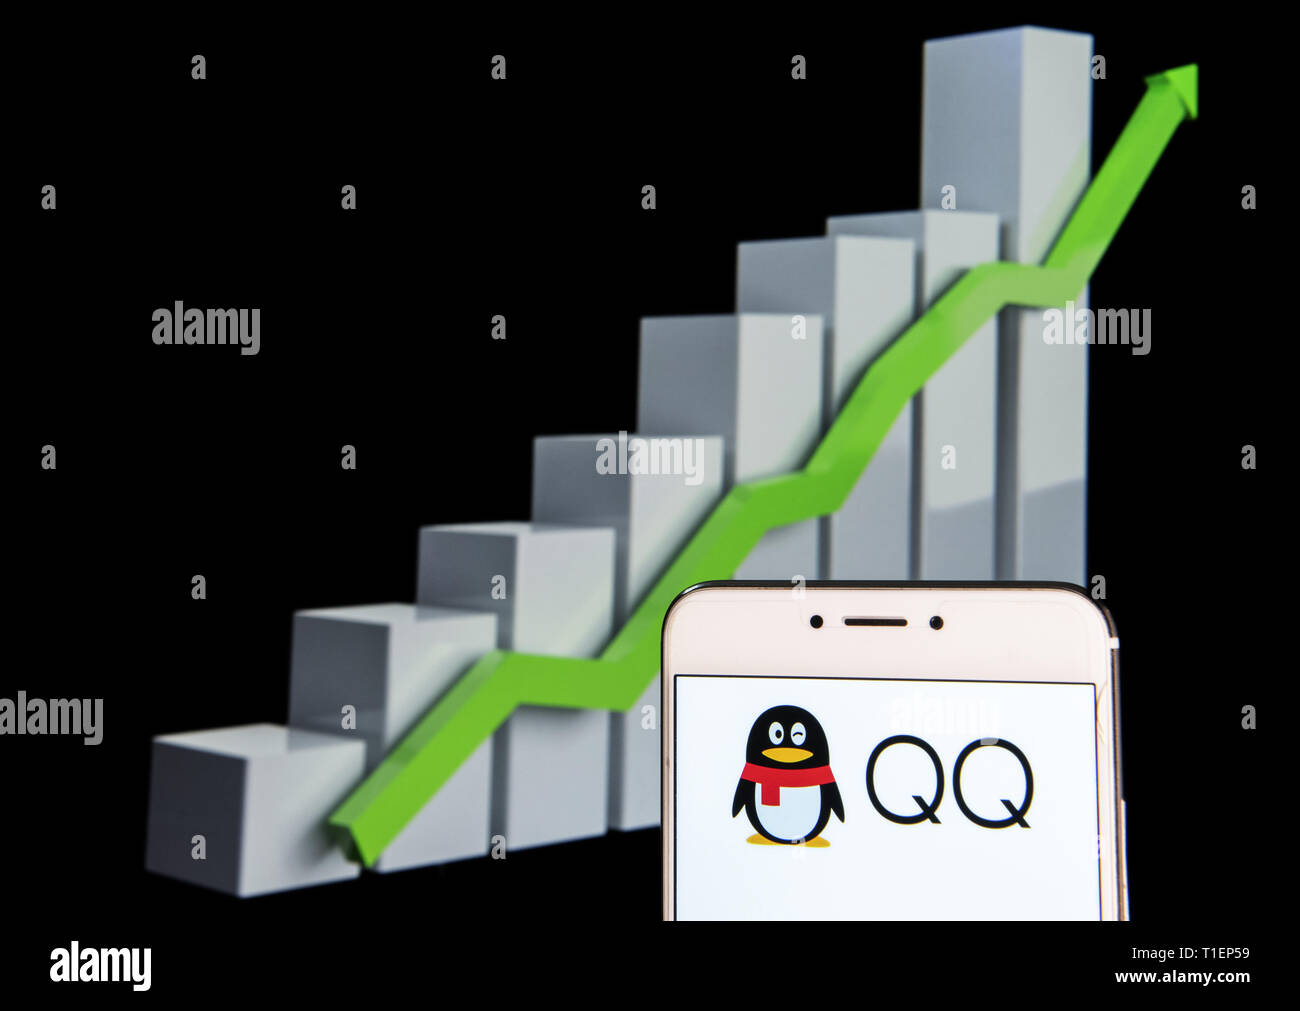 Qq Stock Photos & Qq Stock Images - Alamy